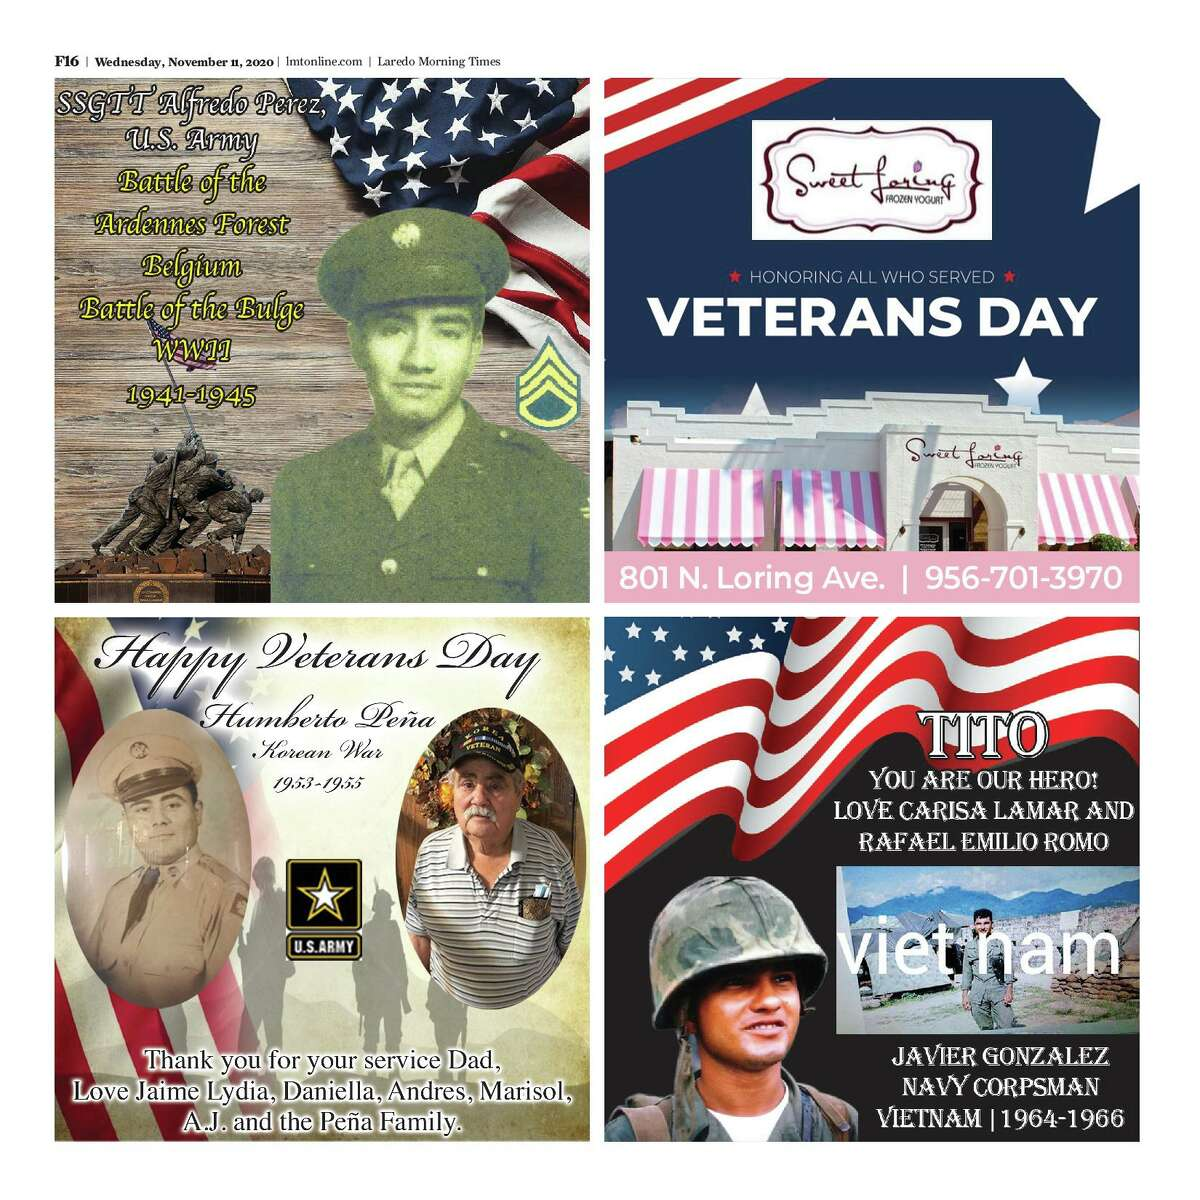 2020 Veterans Day Special Section